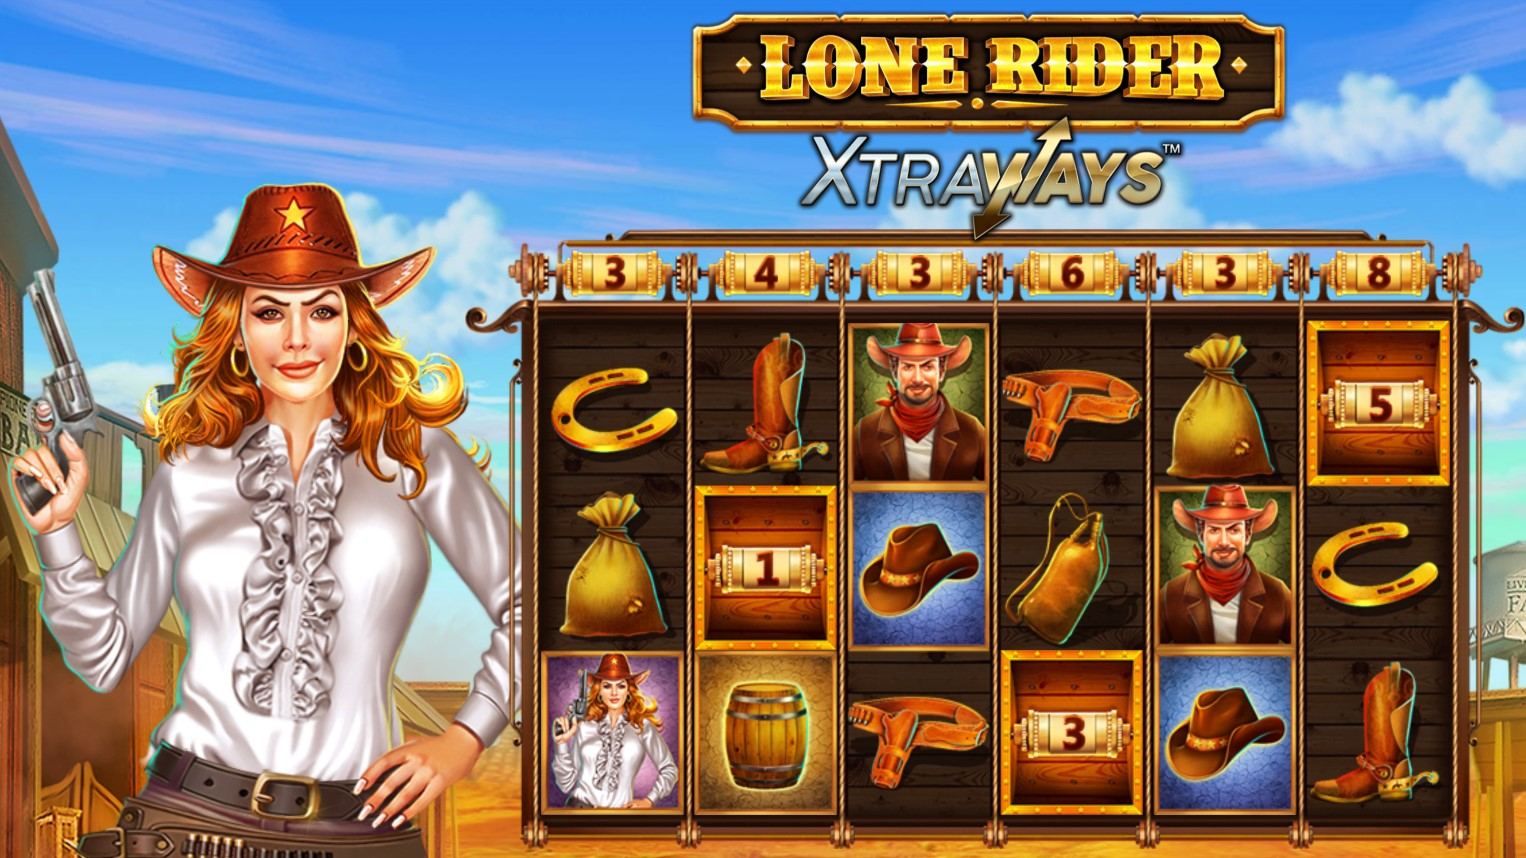 Stetson and spurs at the ready as Swintt takes players into the Wild West with its recent title to its suite of slots - Lone Rider XtraWays.